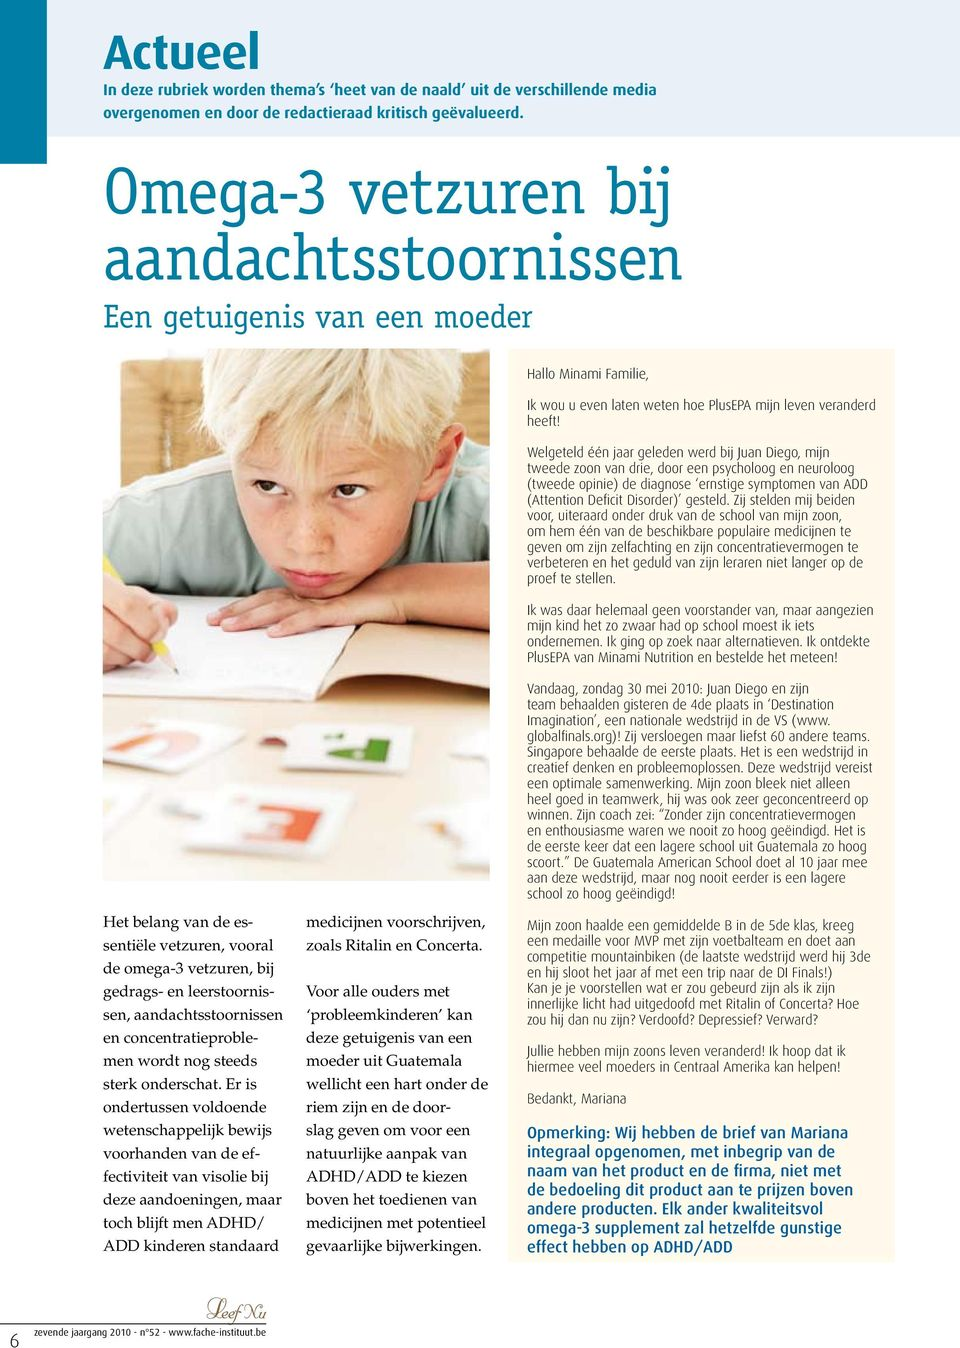 Welgeteld één jaar geleden werd bij Juan Diego, mijn tweede zoon van drie, door een psycholoog en neuroloog (tweede opinie) de diagnose ernstige symptomen van ADD (Attention Deficit Disorder) gesteld.